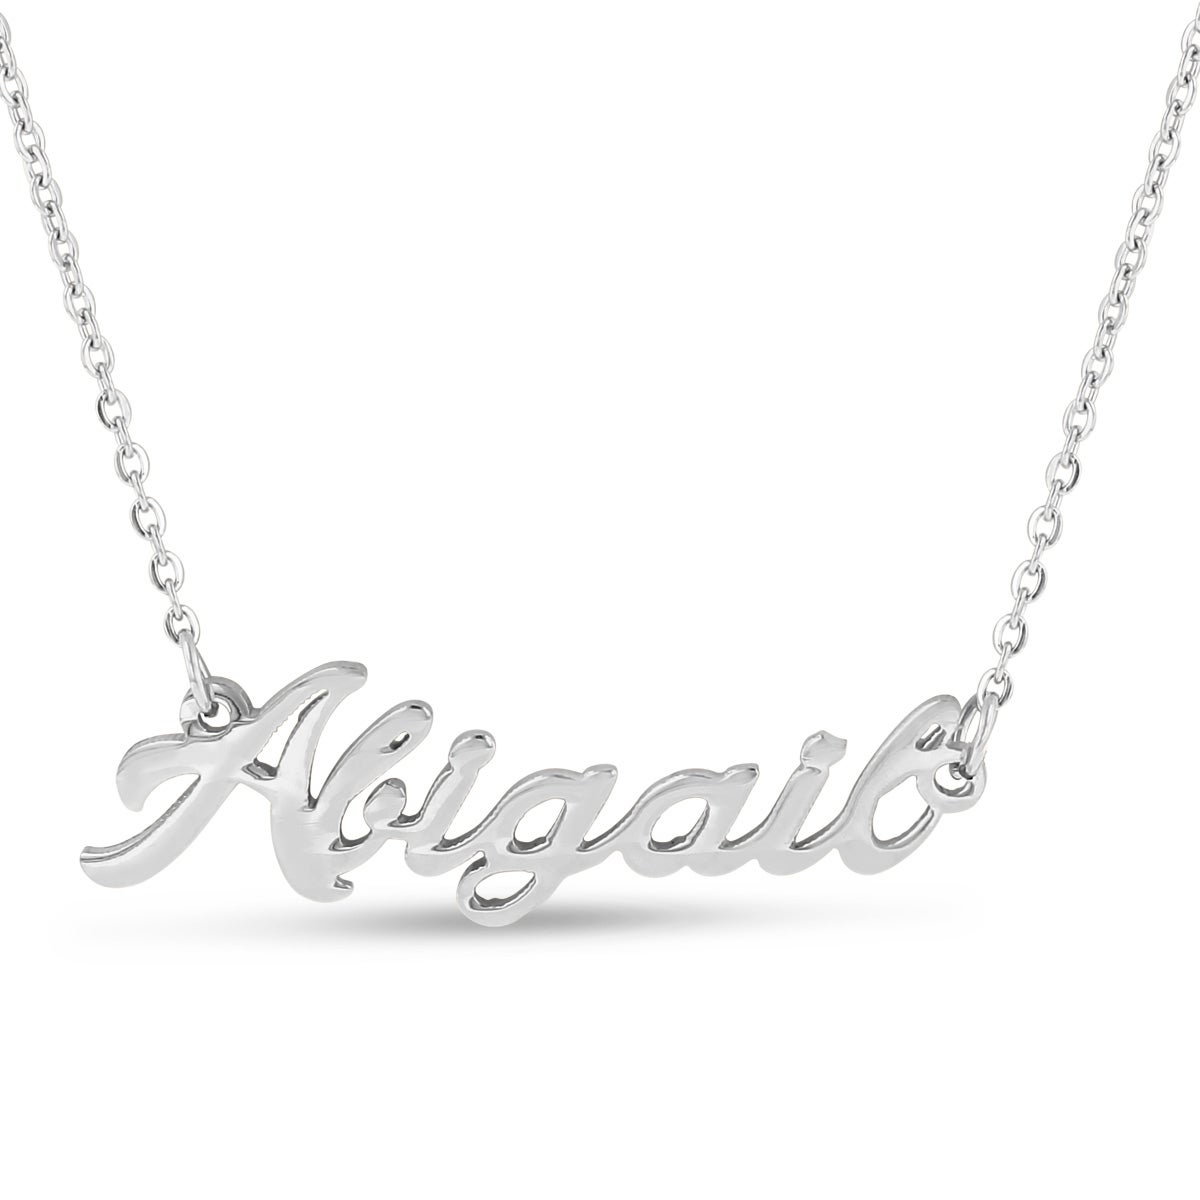 Silverplated Personalized Name Necklace (100 Names Available)